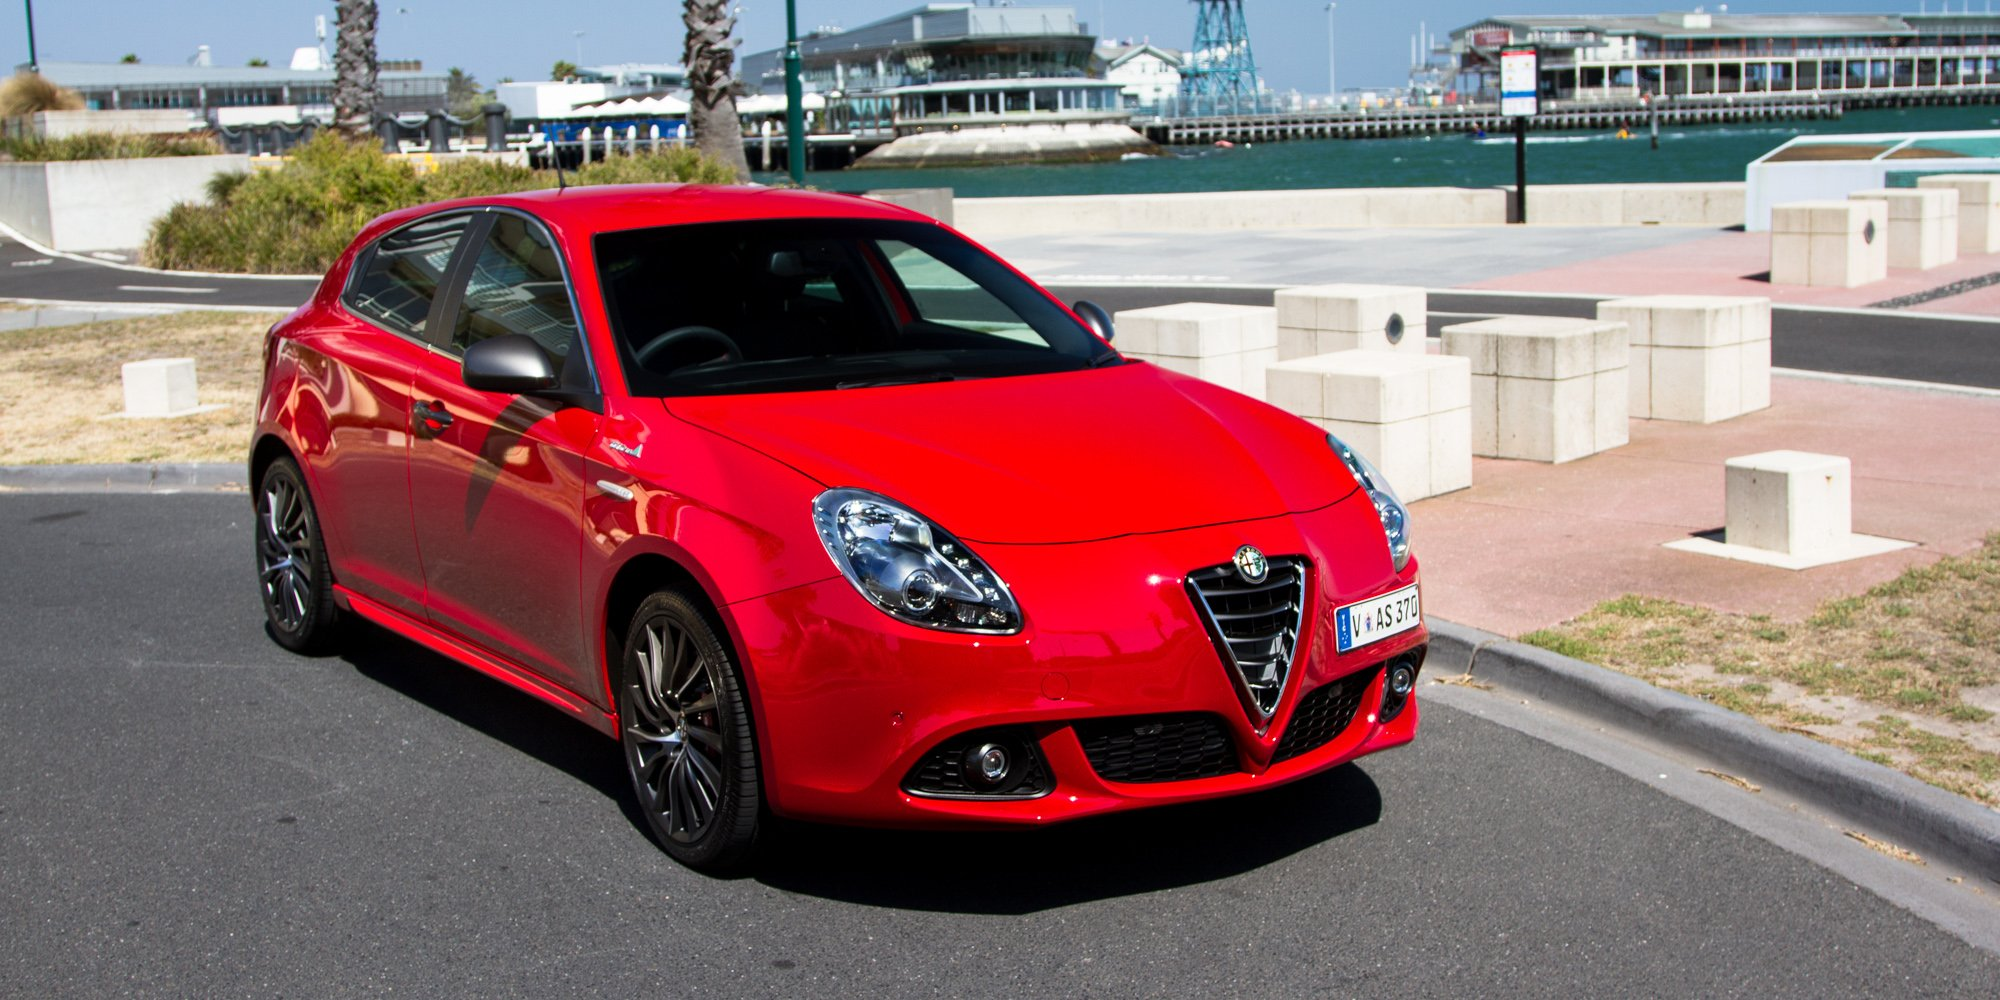 Camry Vs Corolla >> 2015 Alfa Romeo Giulietta Distinctive QV Line Review ...